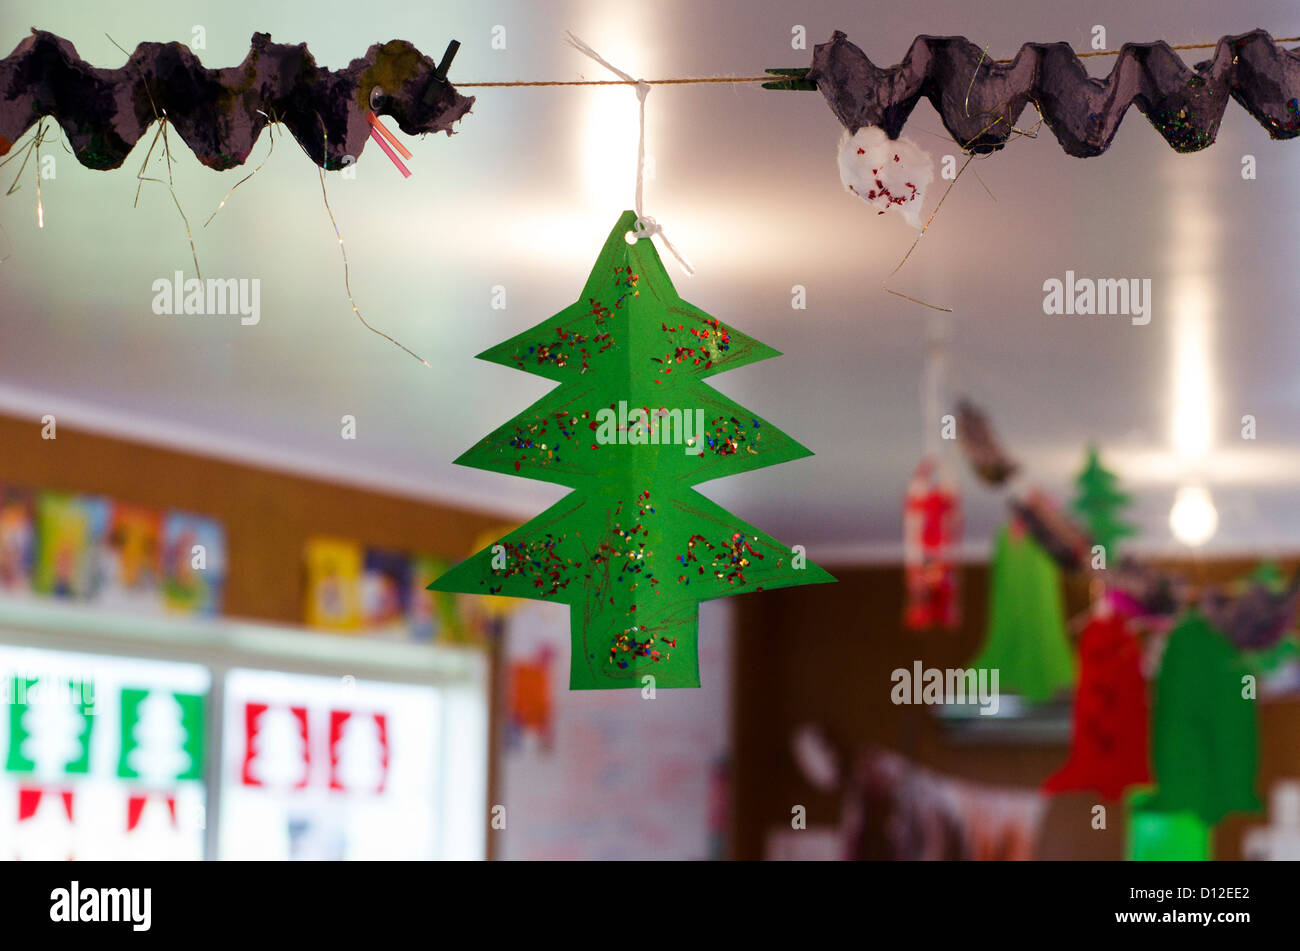 Indoor Decorations Of Xmas   Cut Out Of Red And Green Paper Christmas Tree  And Christmas Bells At Home During Xmas Holiday.